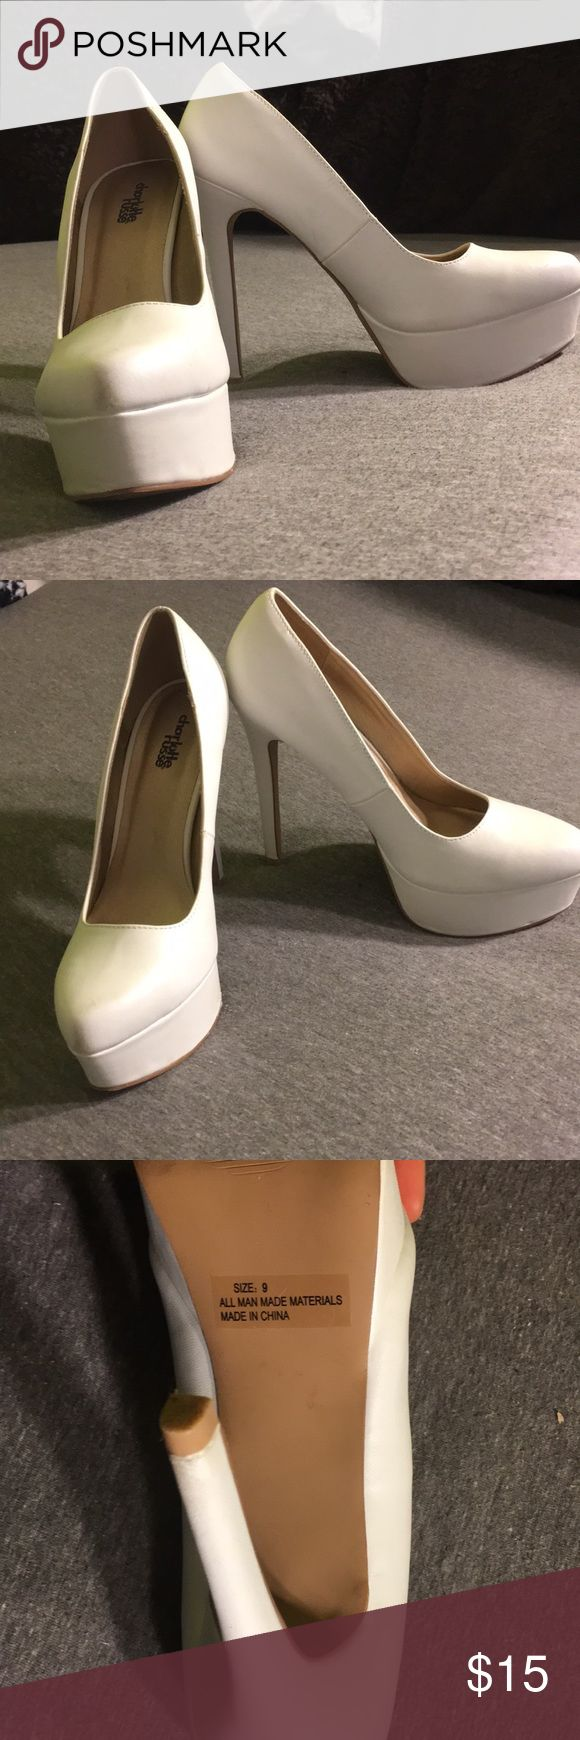 White heals Size 9, from Charlotte Russe. no flaws. Super cute 💕 Charlotte Russe Shoes Heels